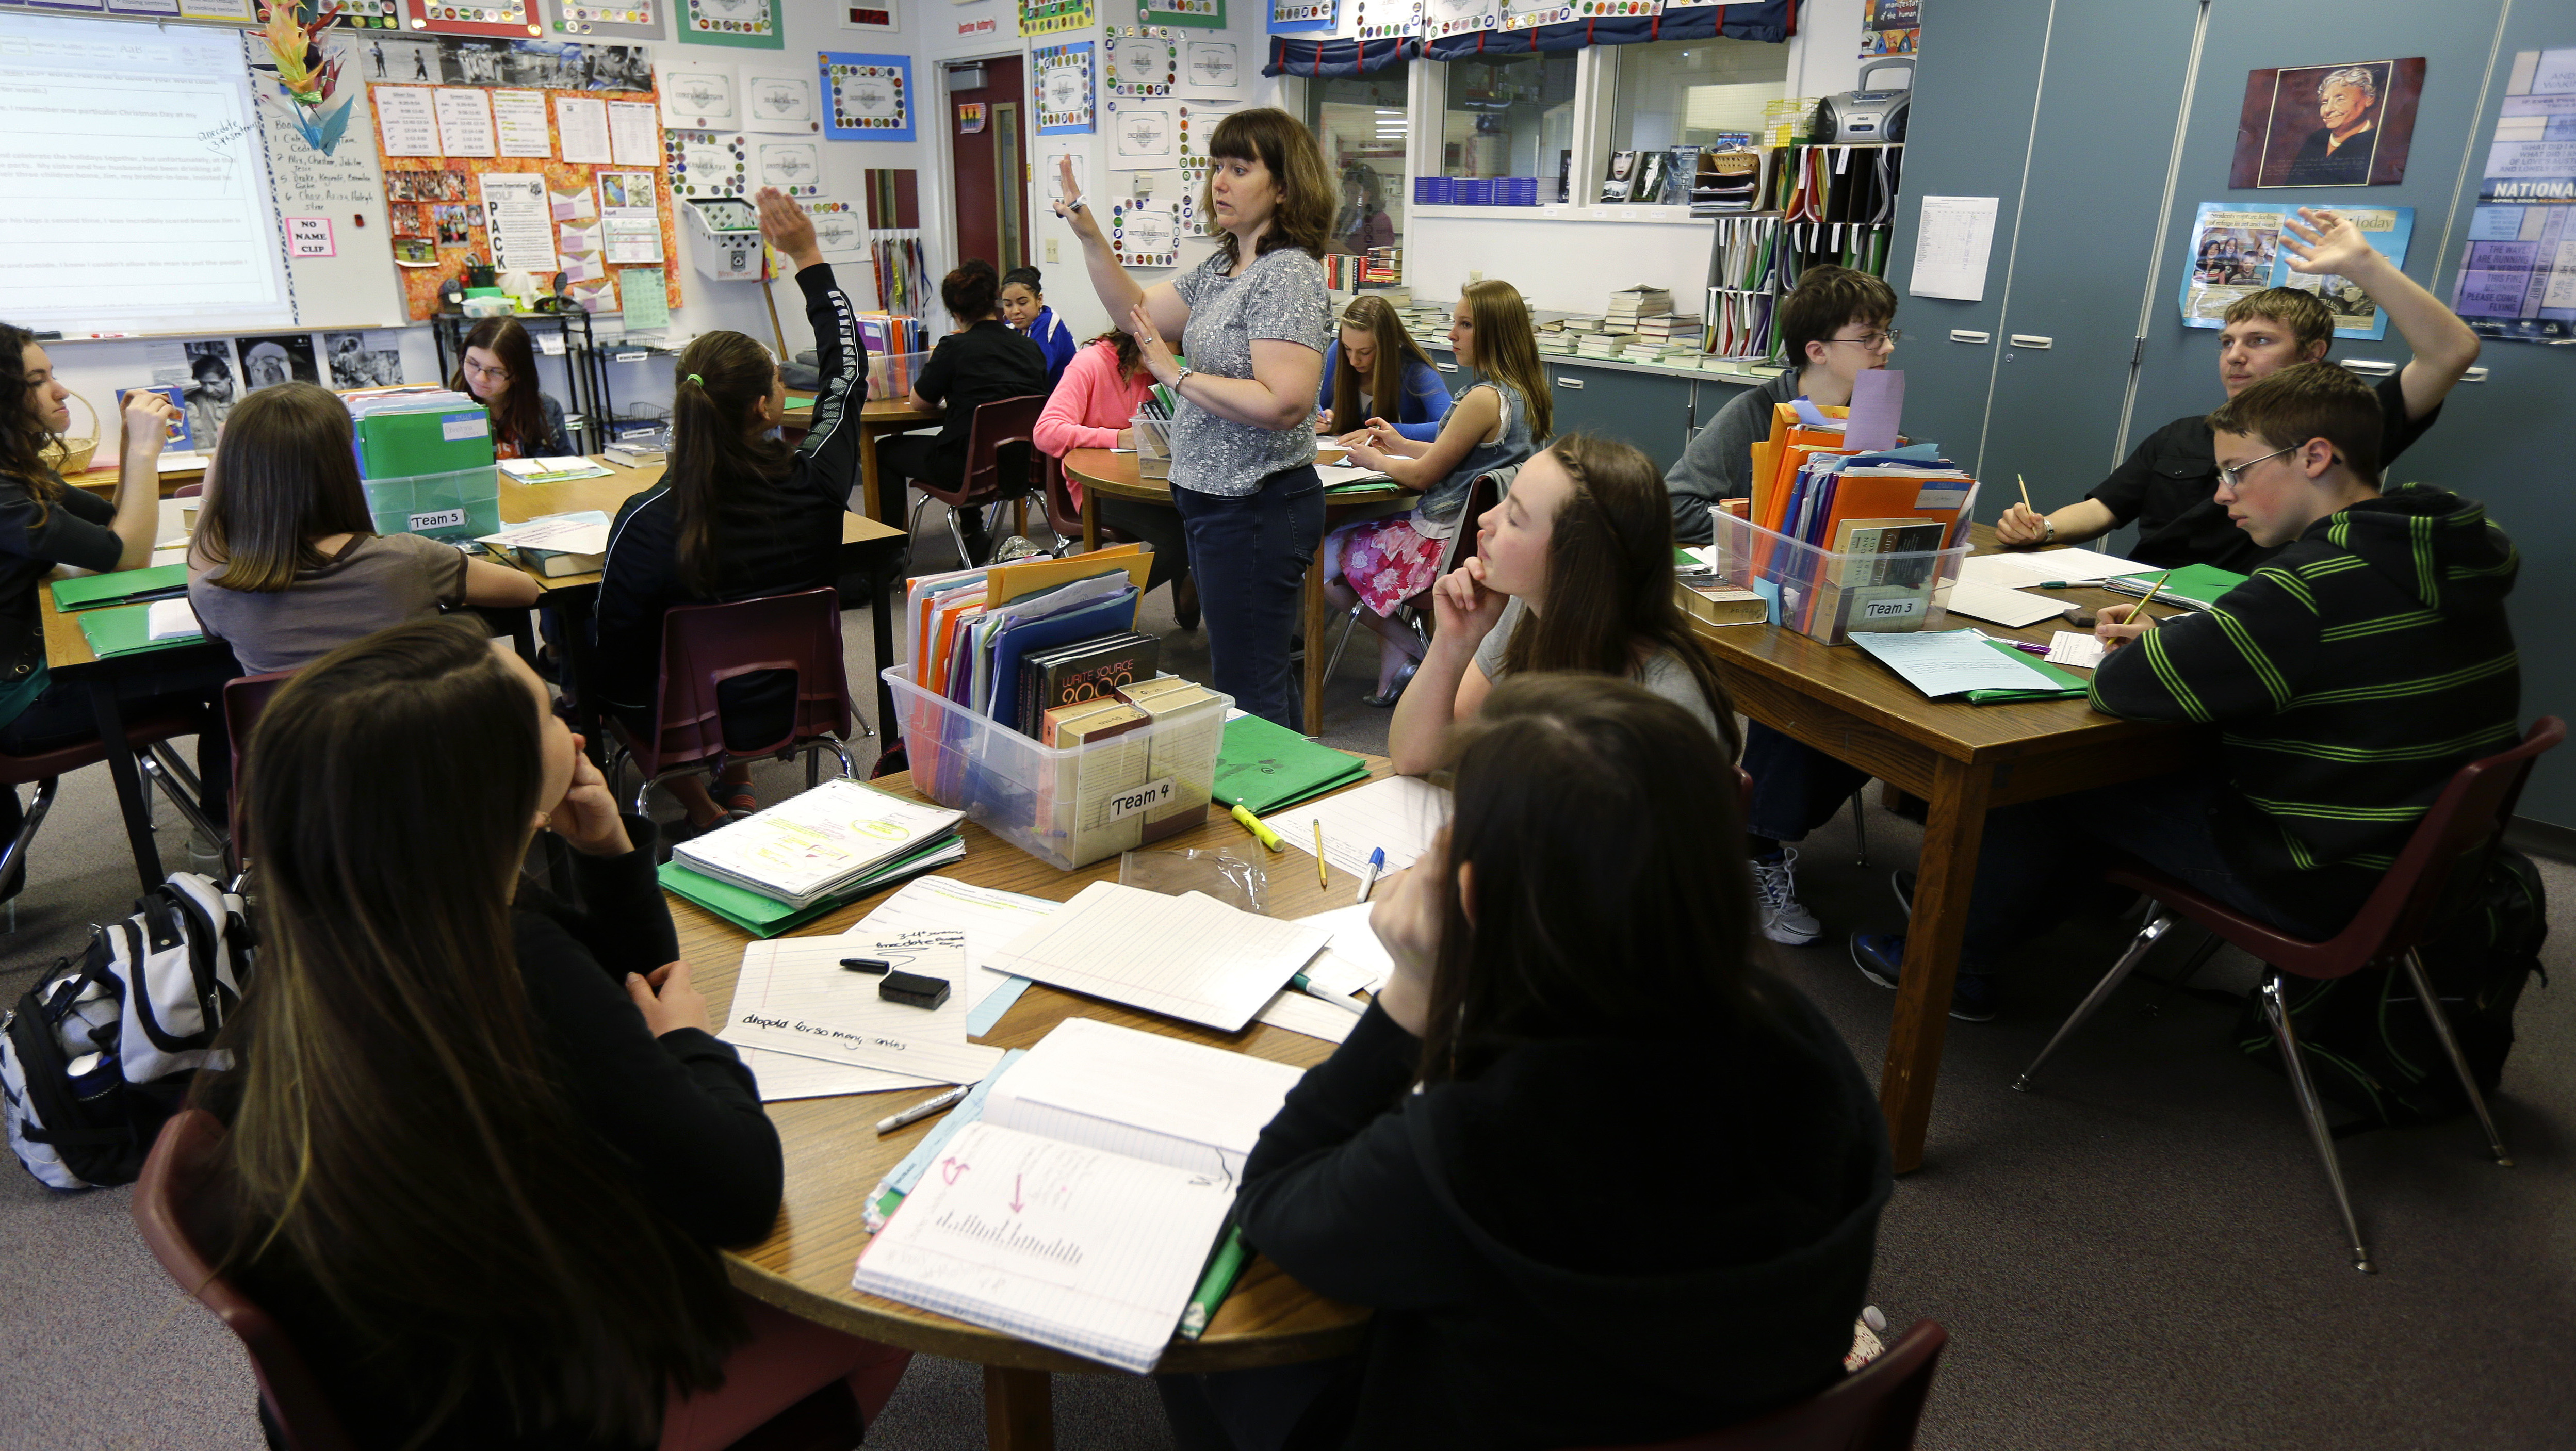 In this April 18, 2014 photo, Annette Wells, center, takes questions in her 7th-8th grade language arts class at Komachin Middle School in Lacey, Wash. Wells has switched from desks to tables due to the number of students she needs to fit in her classroom. An Associated Press analysis of Washington school enrollment data shows 136 school districts, out of 295, added students between the 2011-12 school year and the current academic year. (AP Photo/Ted S. Warren)